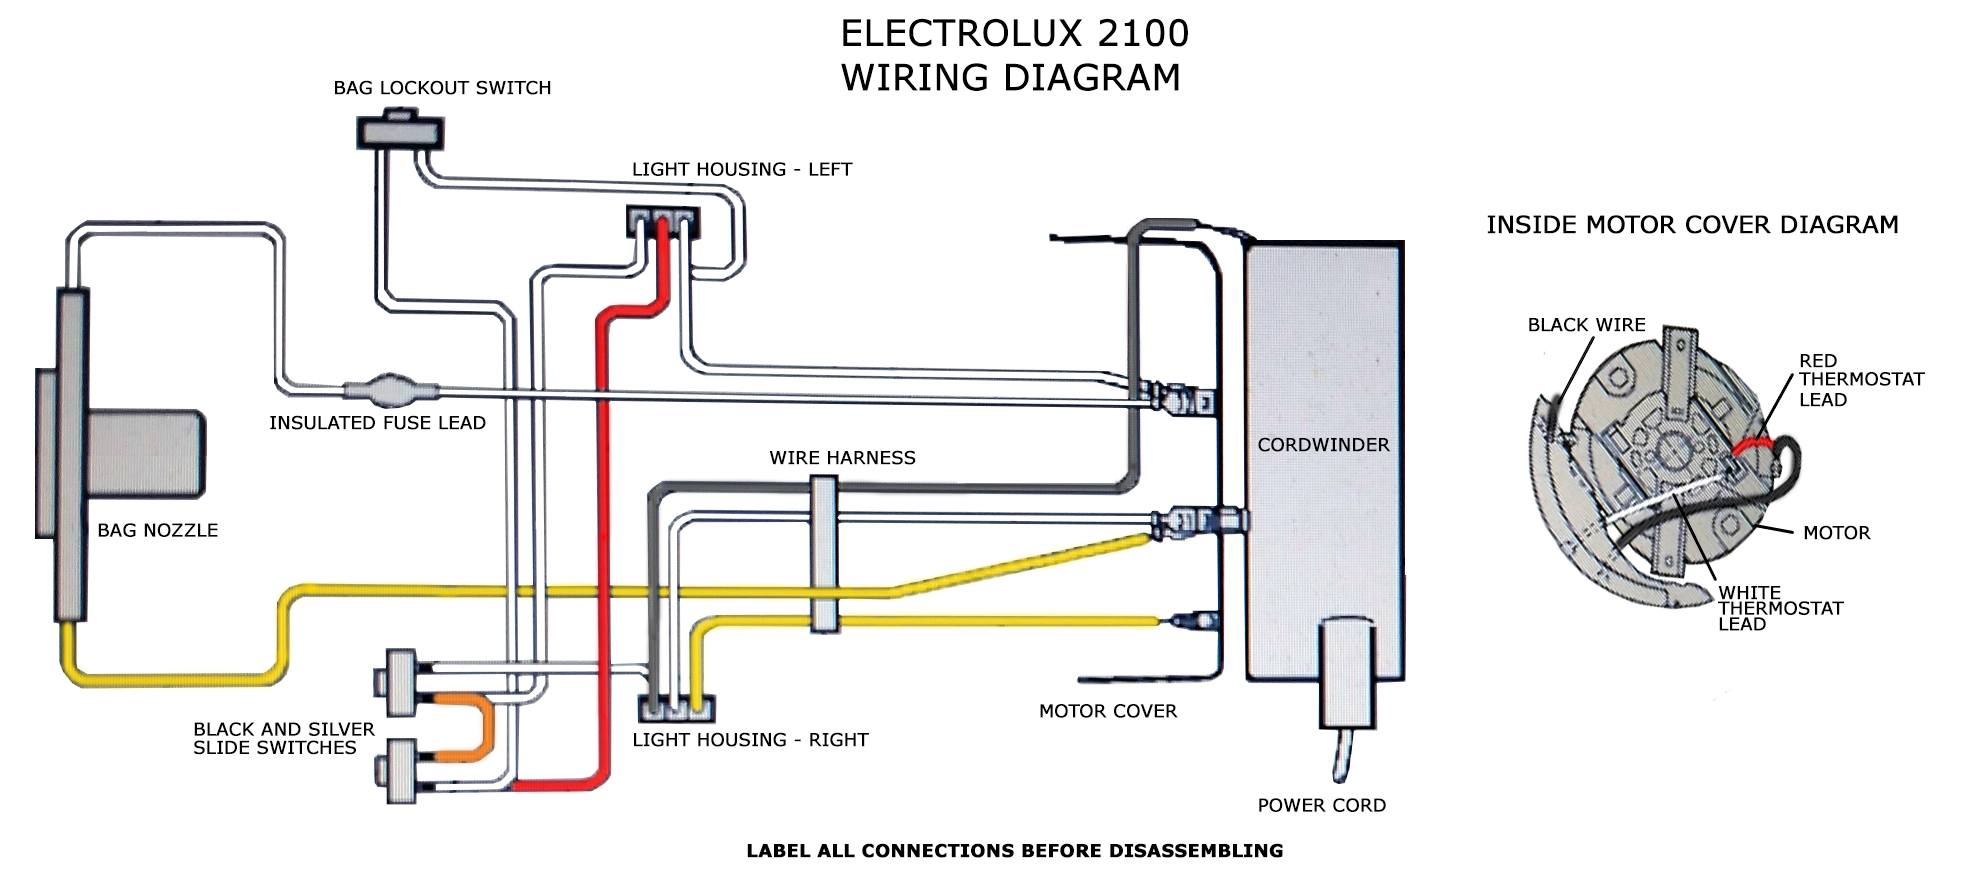 2100 wiring diagram electrolux 2100 wiring diagram vacuum cleaner motor wiring diagram at webbmarketing.co